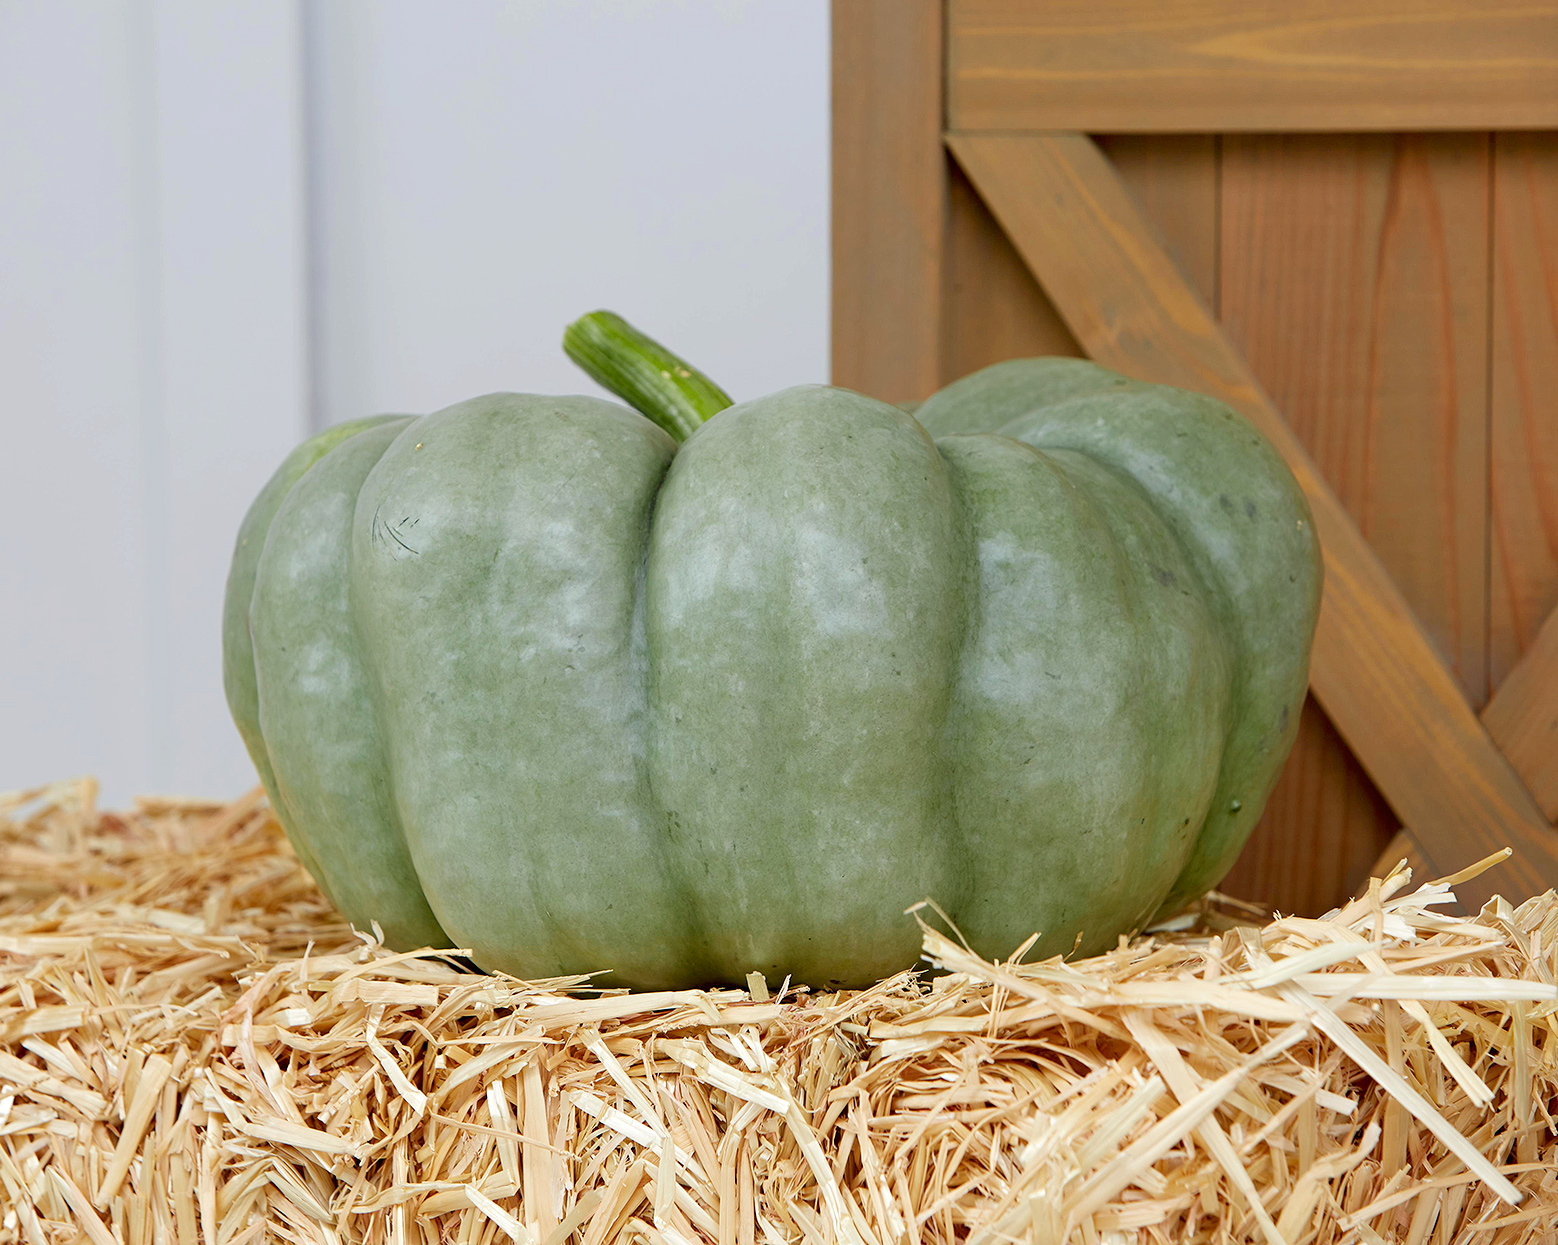 green 'blue doll' pumpkin variety on straw